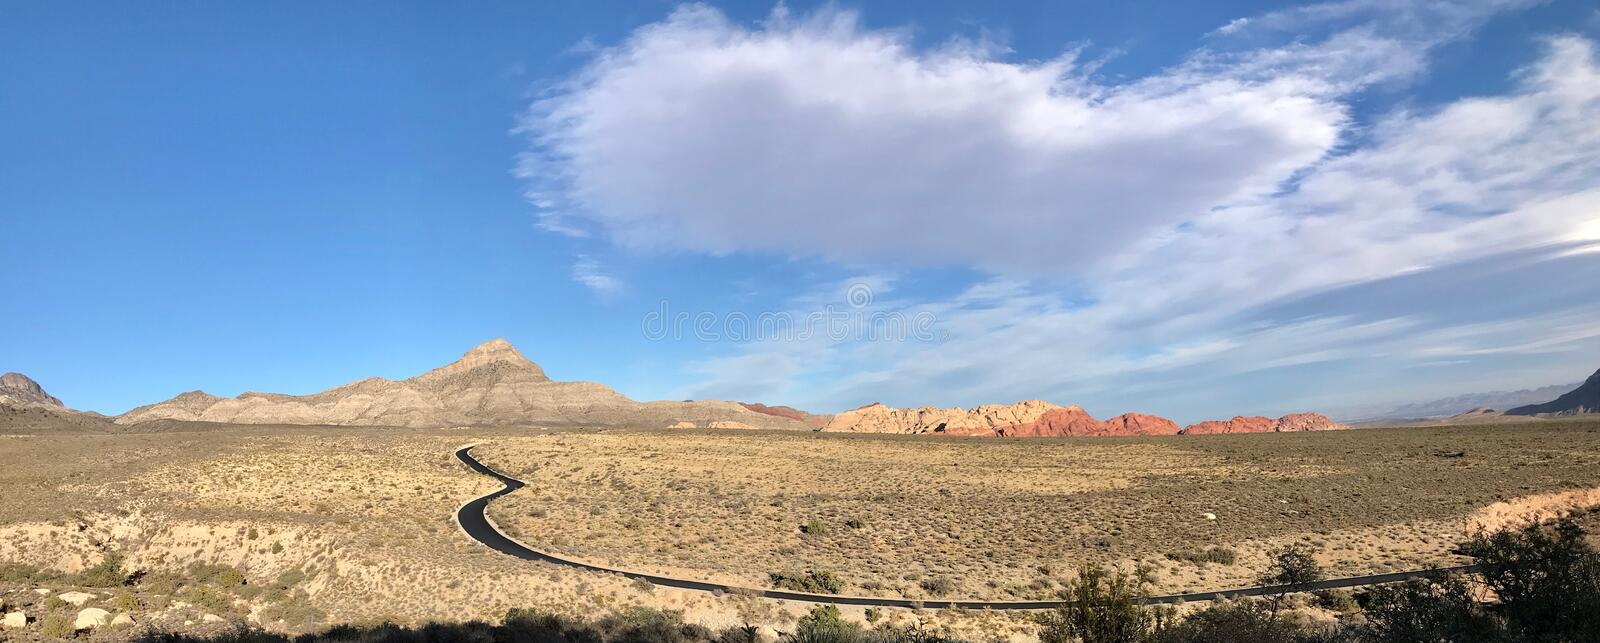 Red Rock Canyon Conservation Area, Nevada, USA stock photography